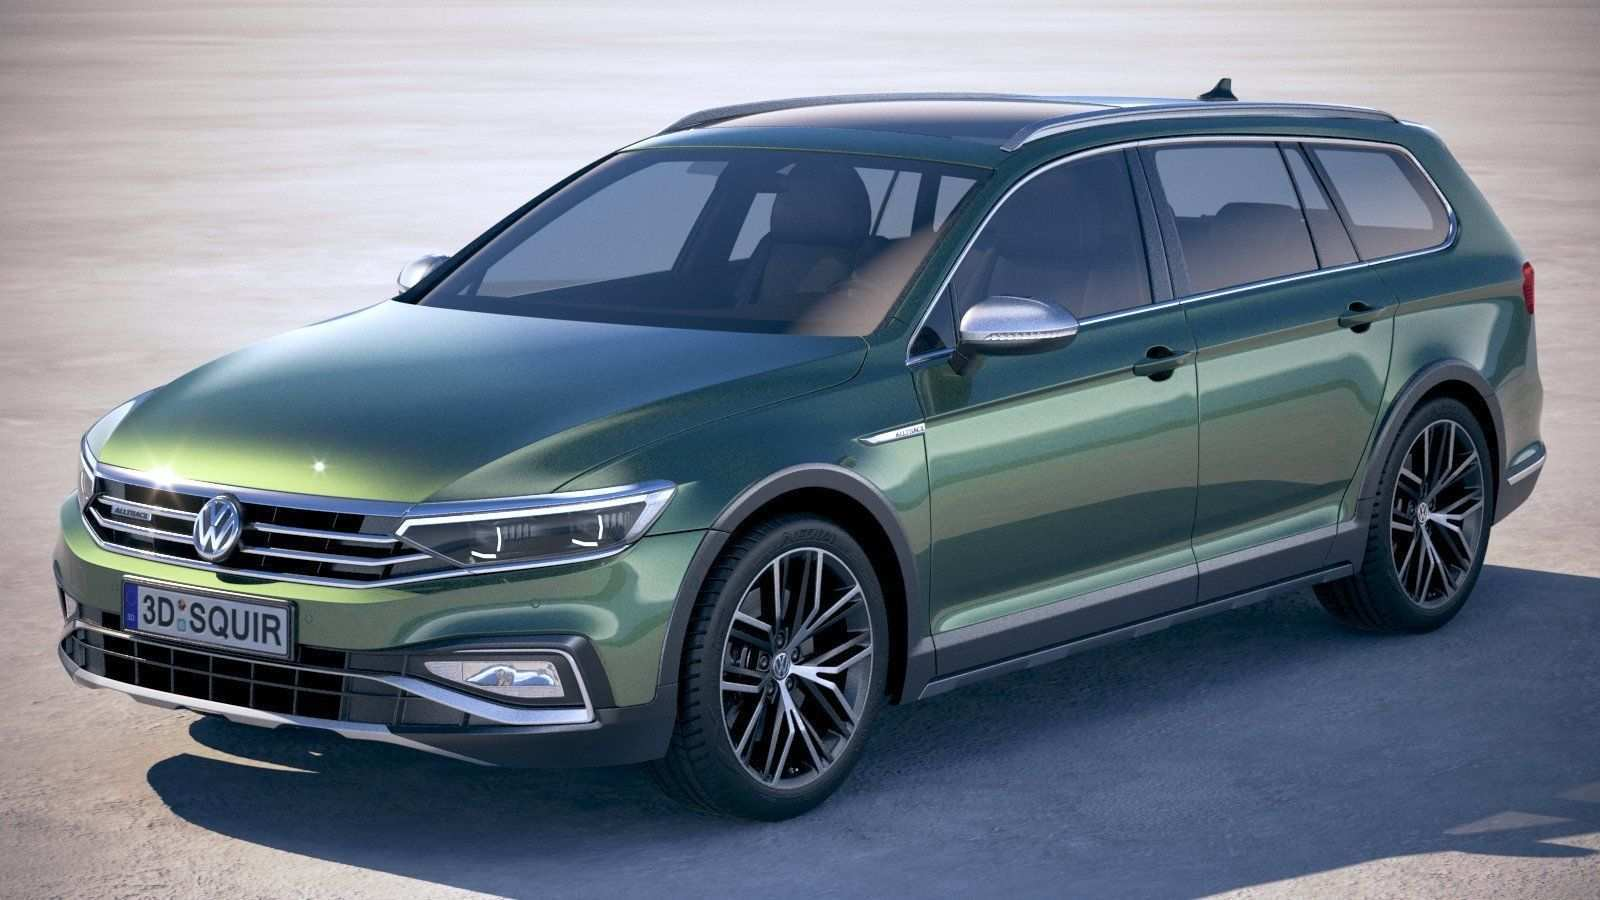 69 The Best 2020 Vw Passat Alltrack Rumors